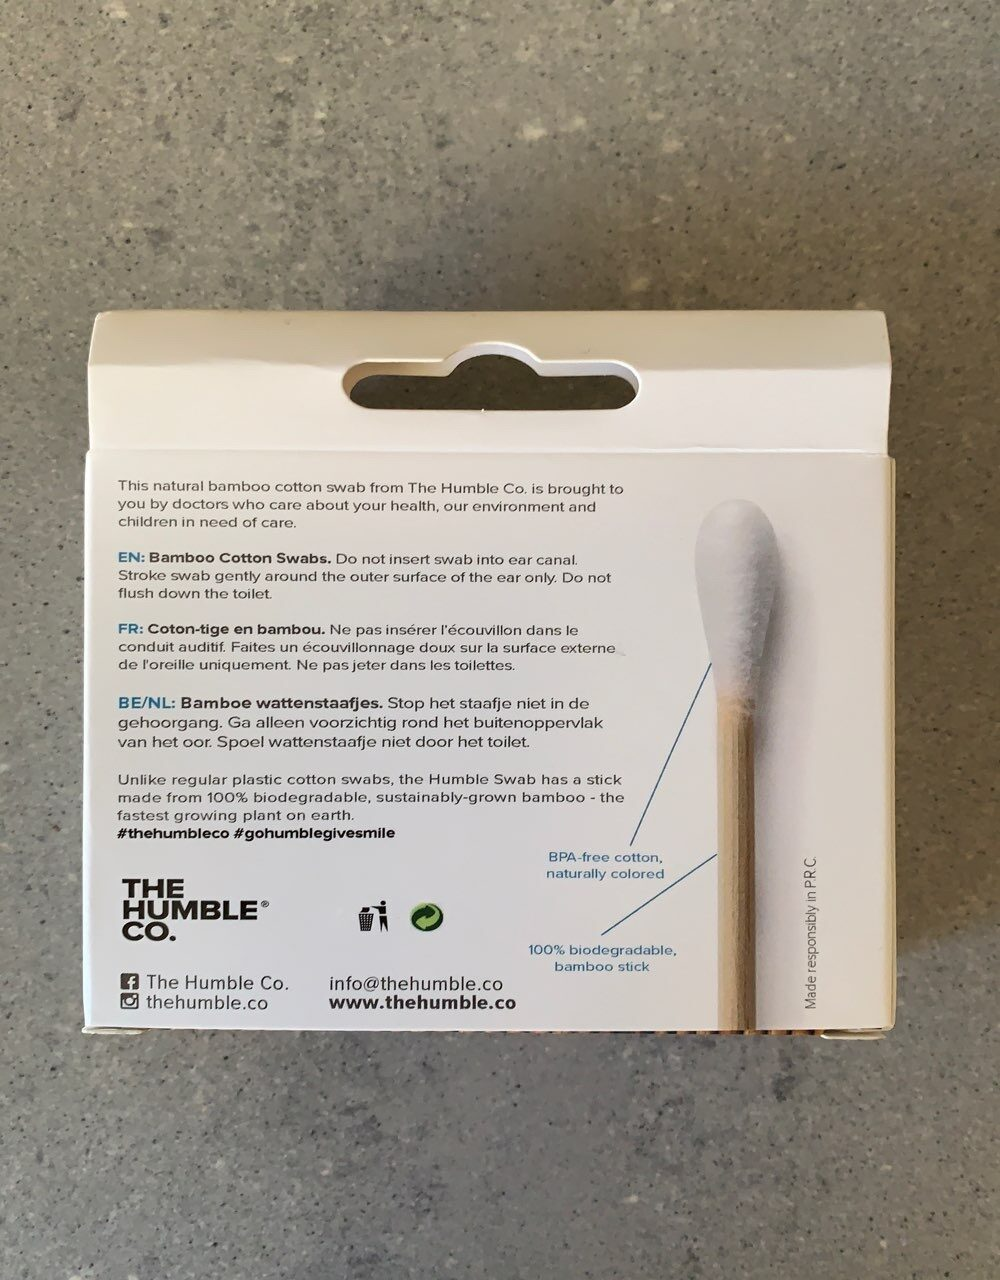 Eco friendly & socially responsible bamboo cotton swabs - Ingredients - en